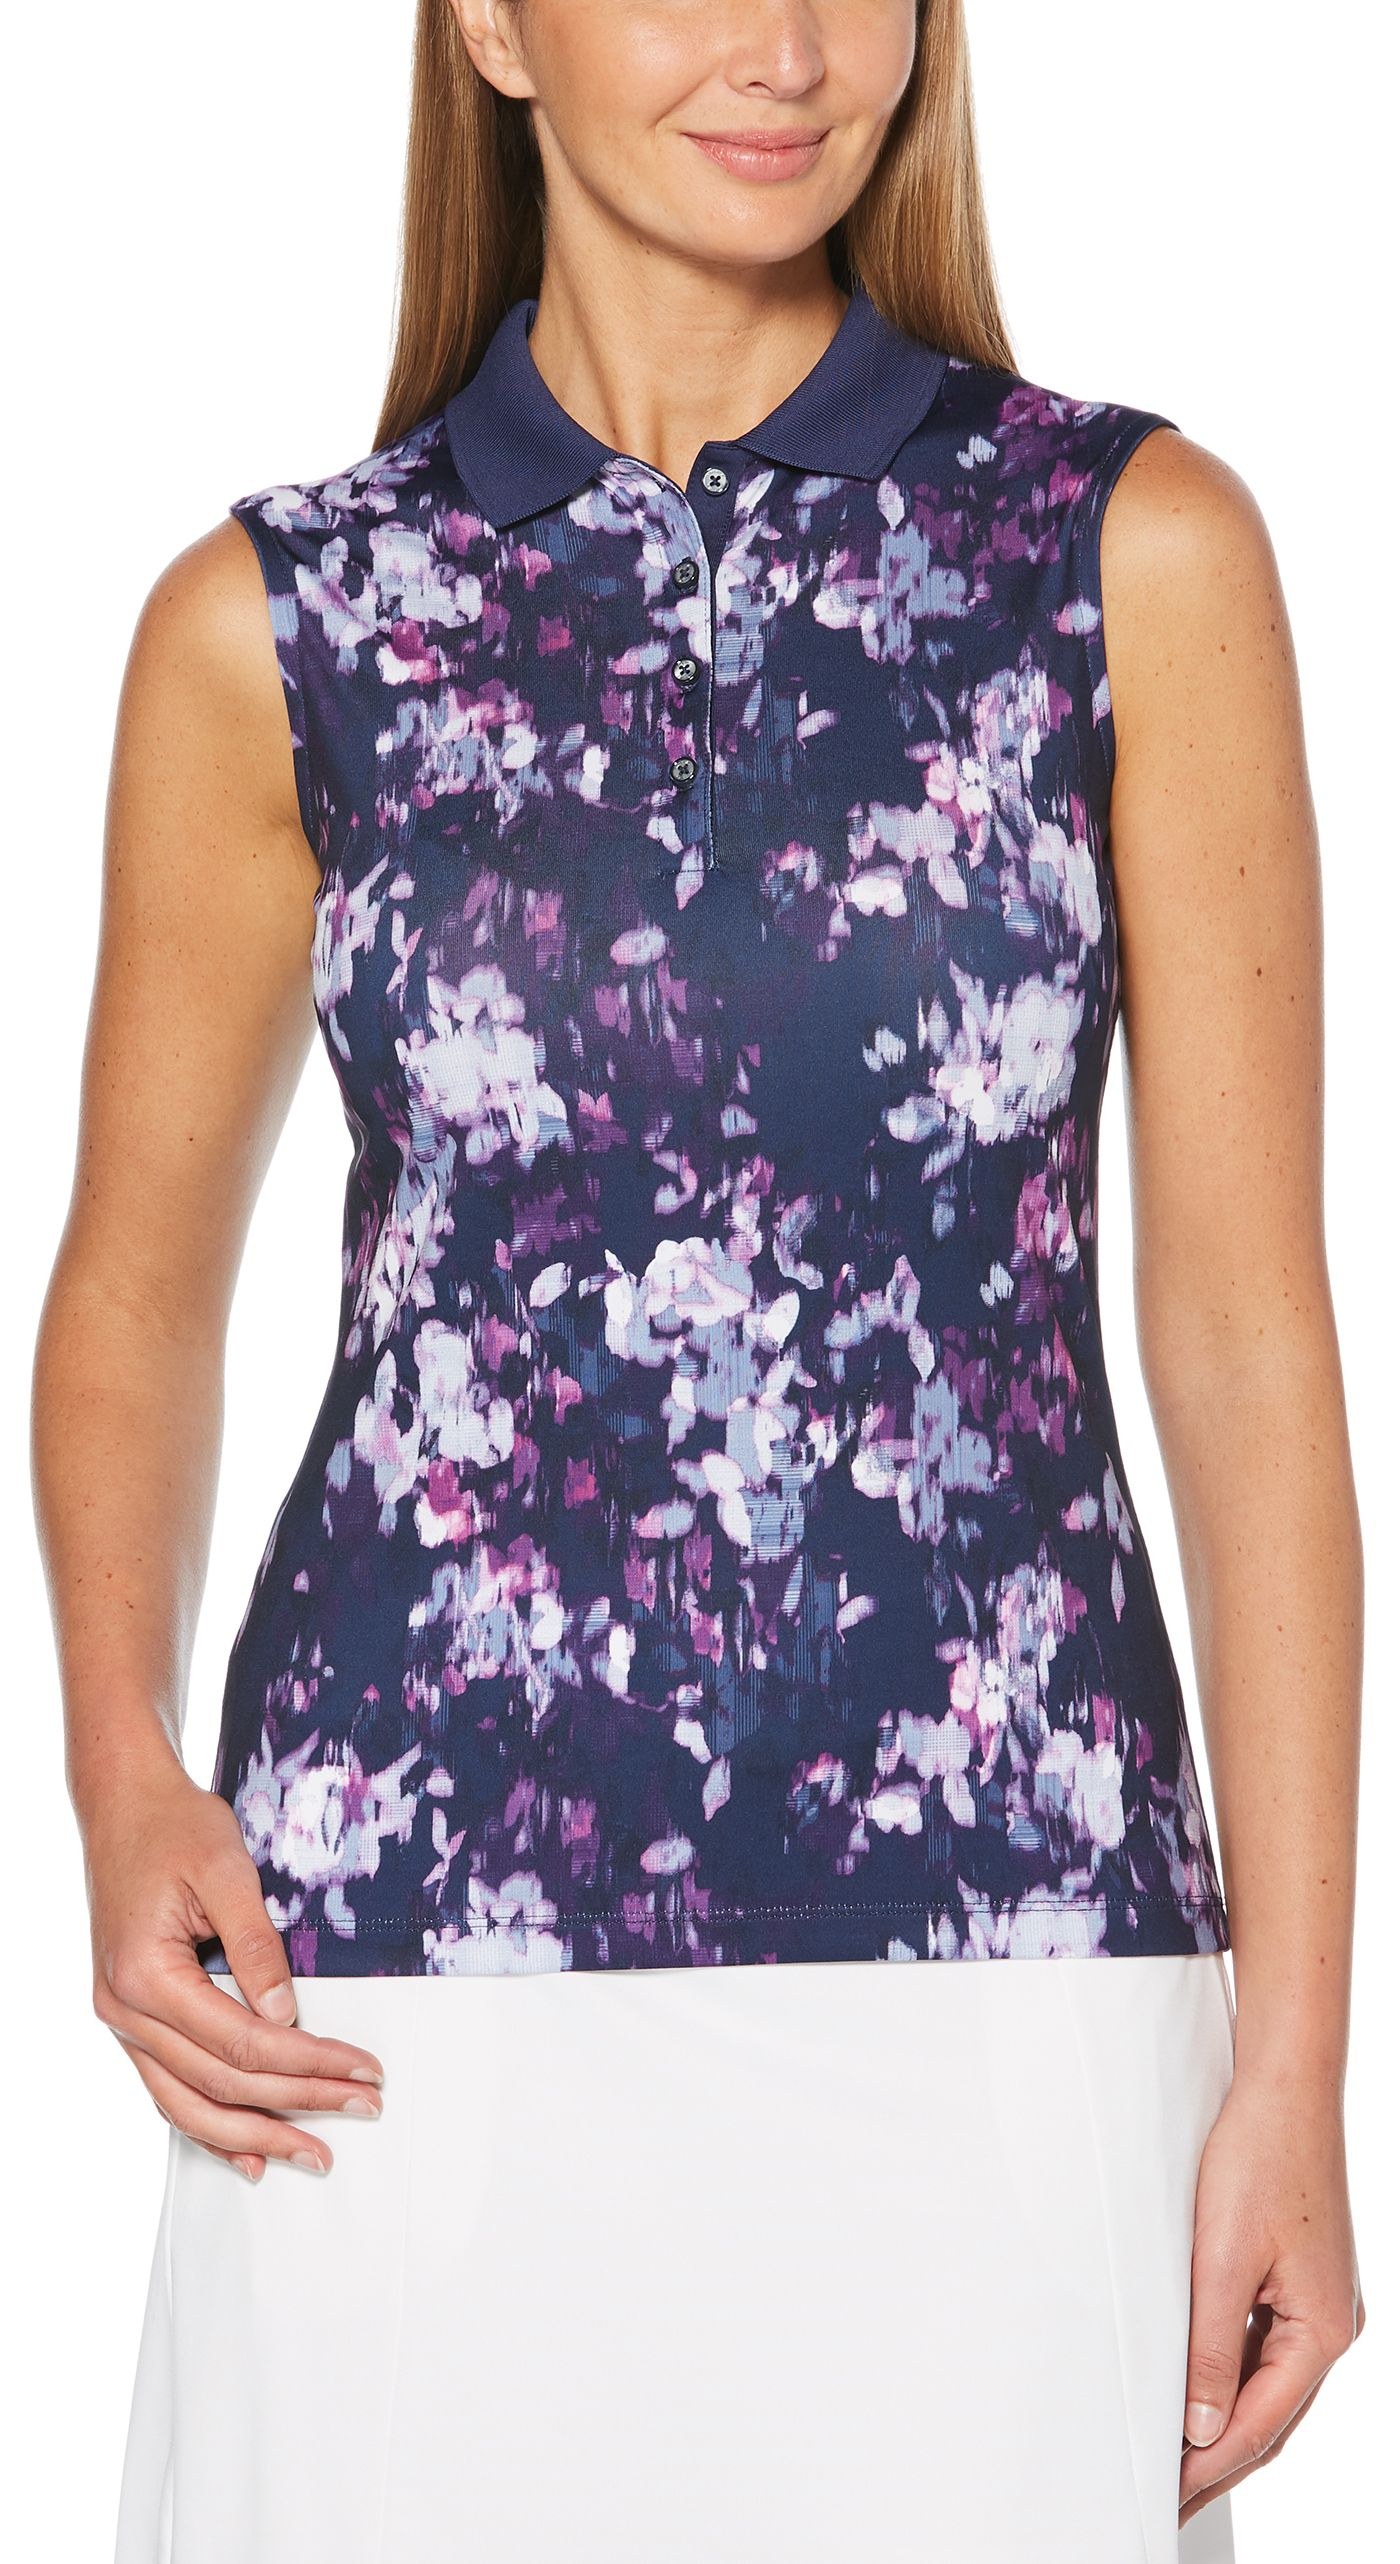 Callaway Women's Ventilated Floral Print Sleeveless Golf Polo - Extended Sizes